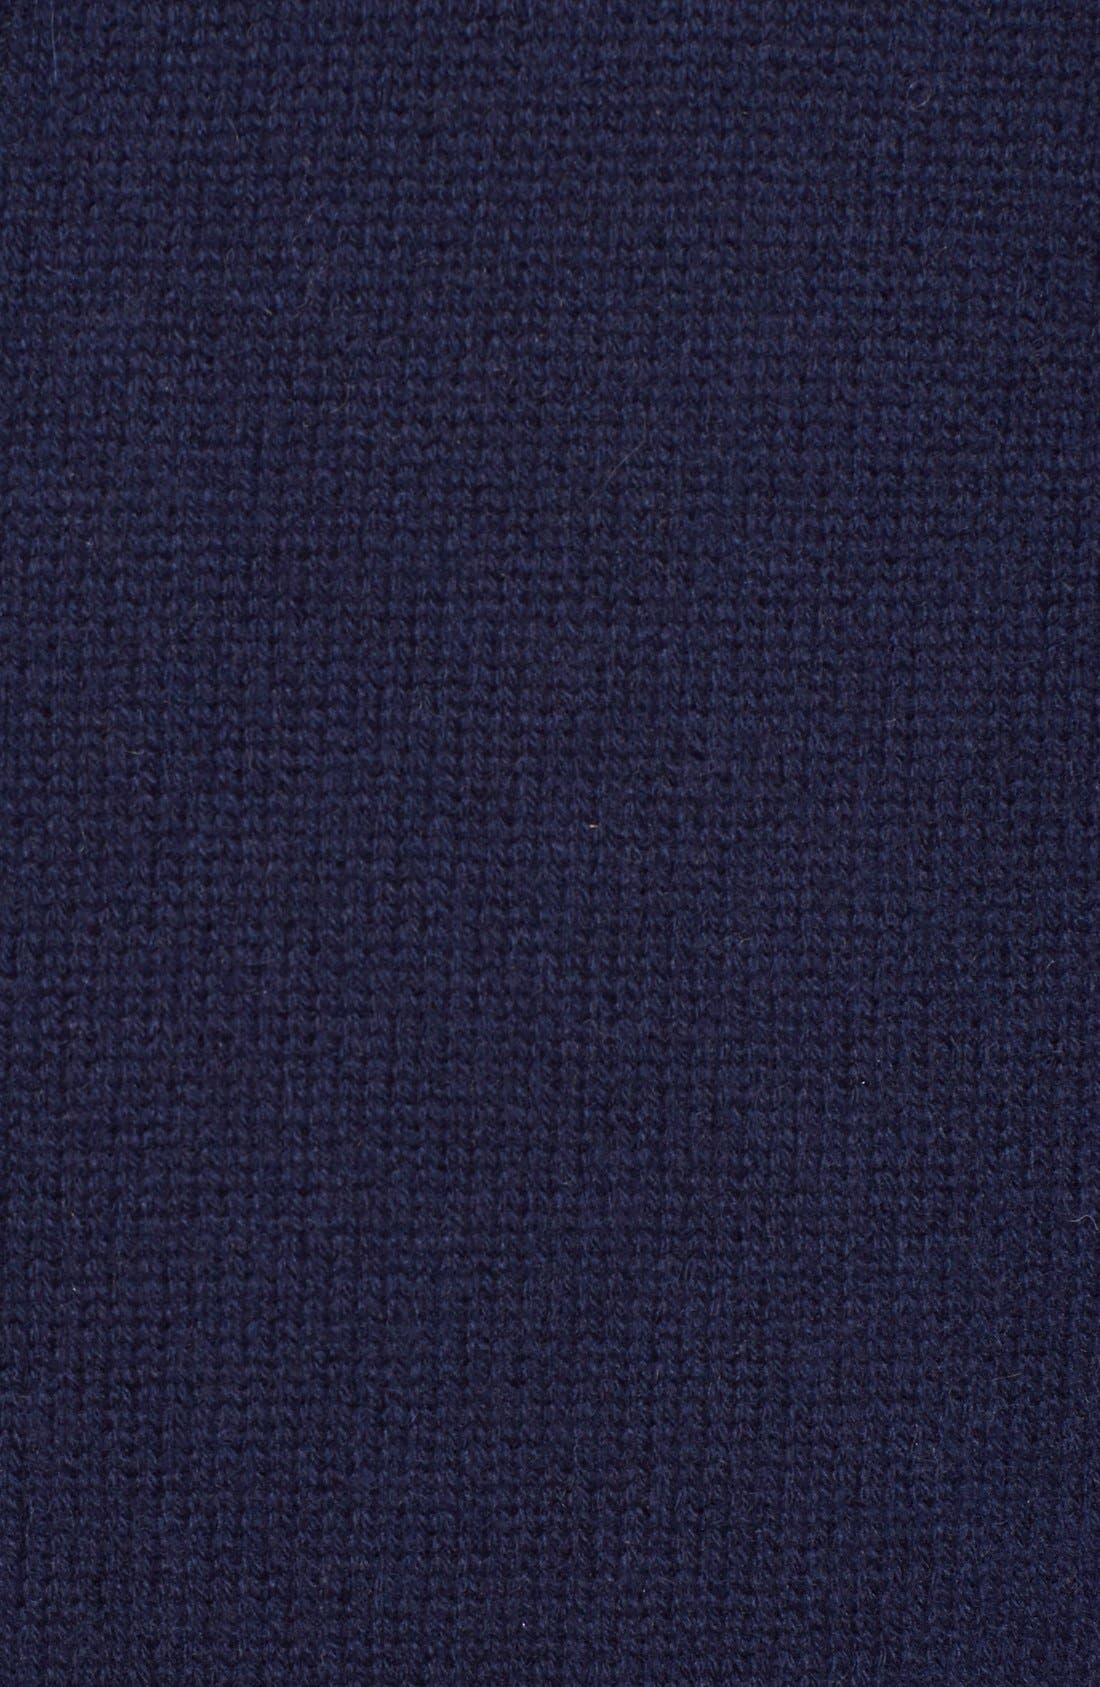 'Looker' Layered Wool & Cashmere Dress,                             Alternate thumbnail 2, color,                             414